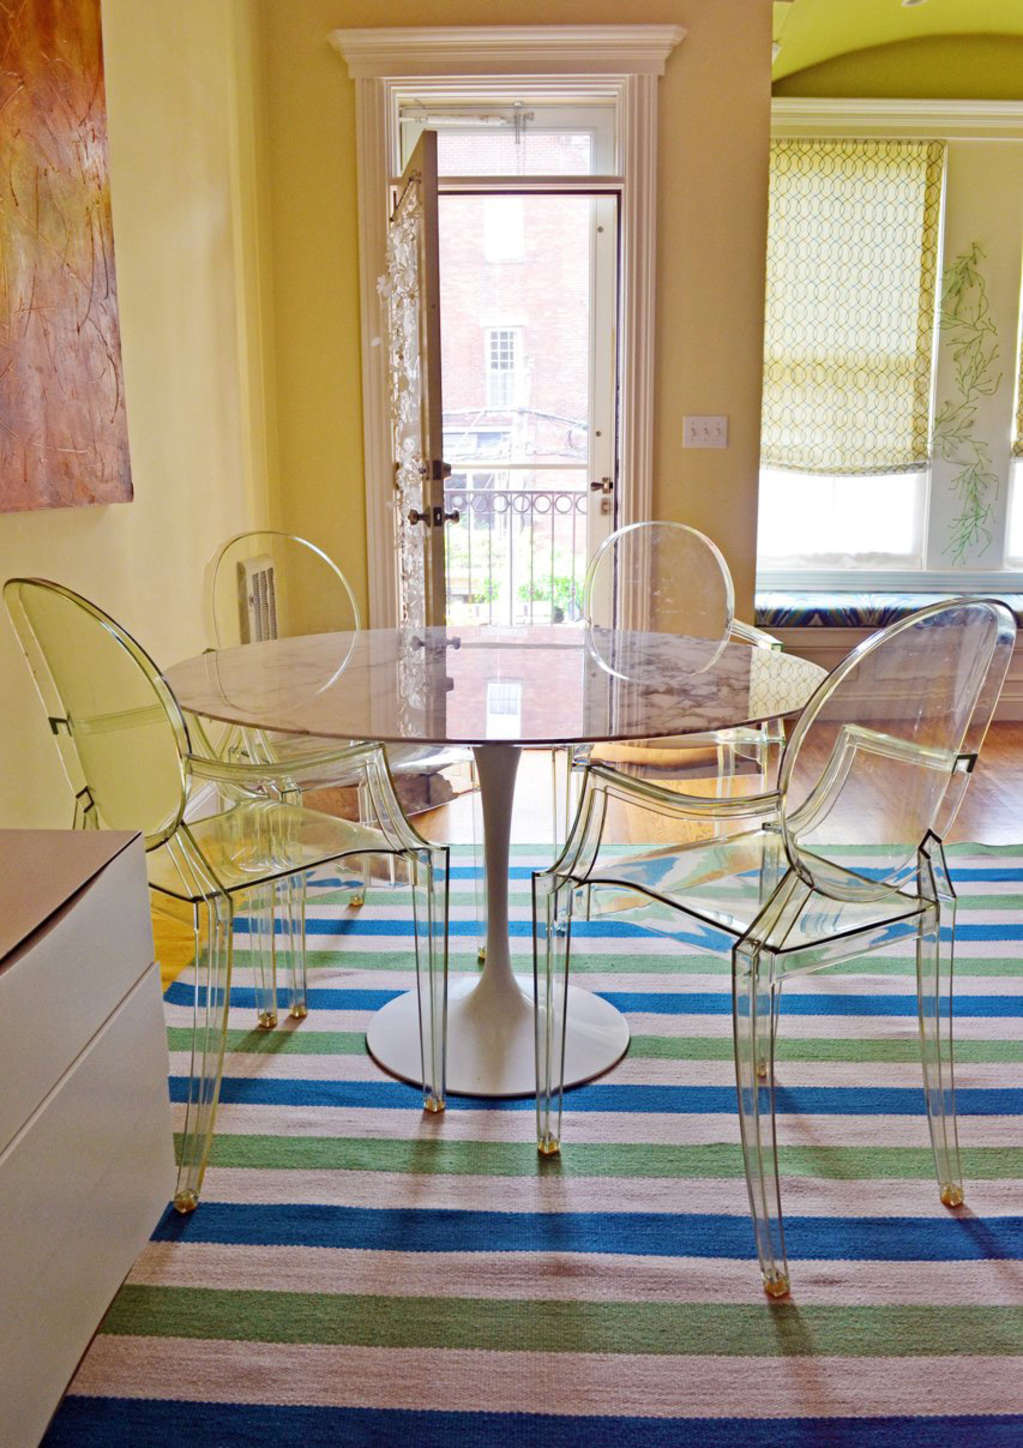 Seema's Global Eclectic Rowhouse